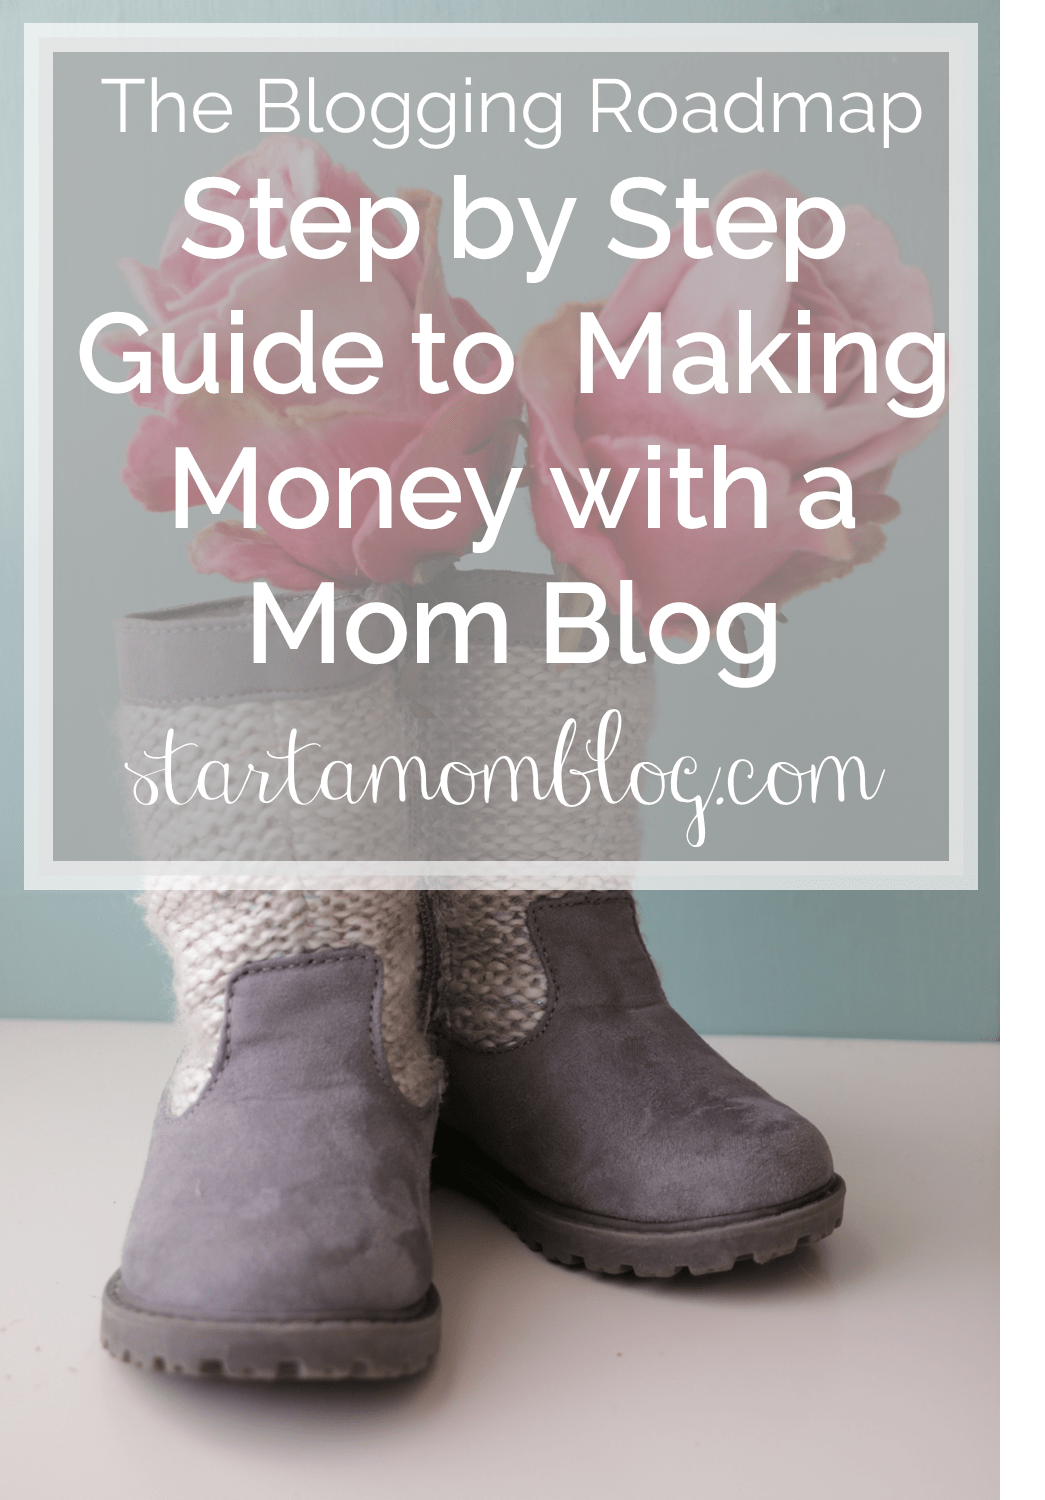 The Blogging Roadmap a step by step guide to making money with a mom blog www.startamomblog.com